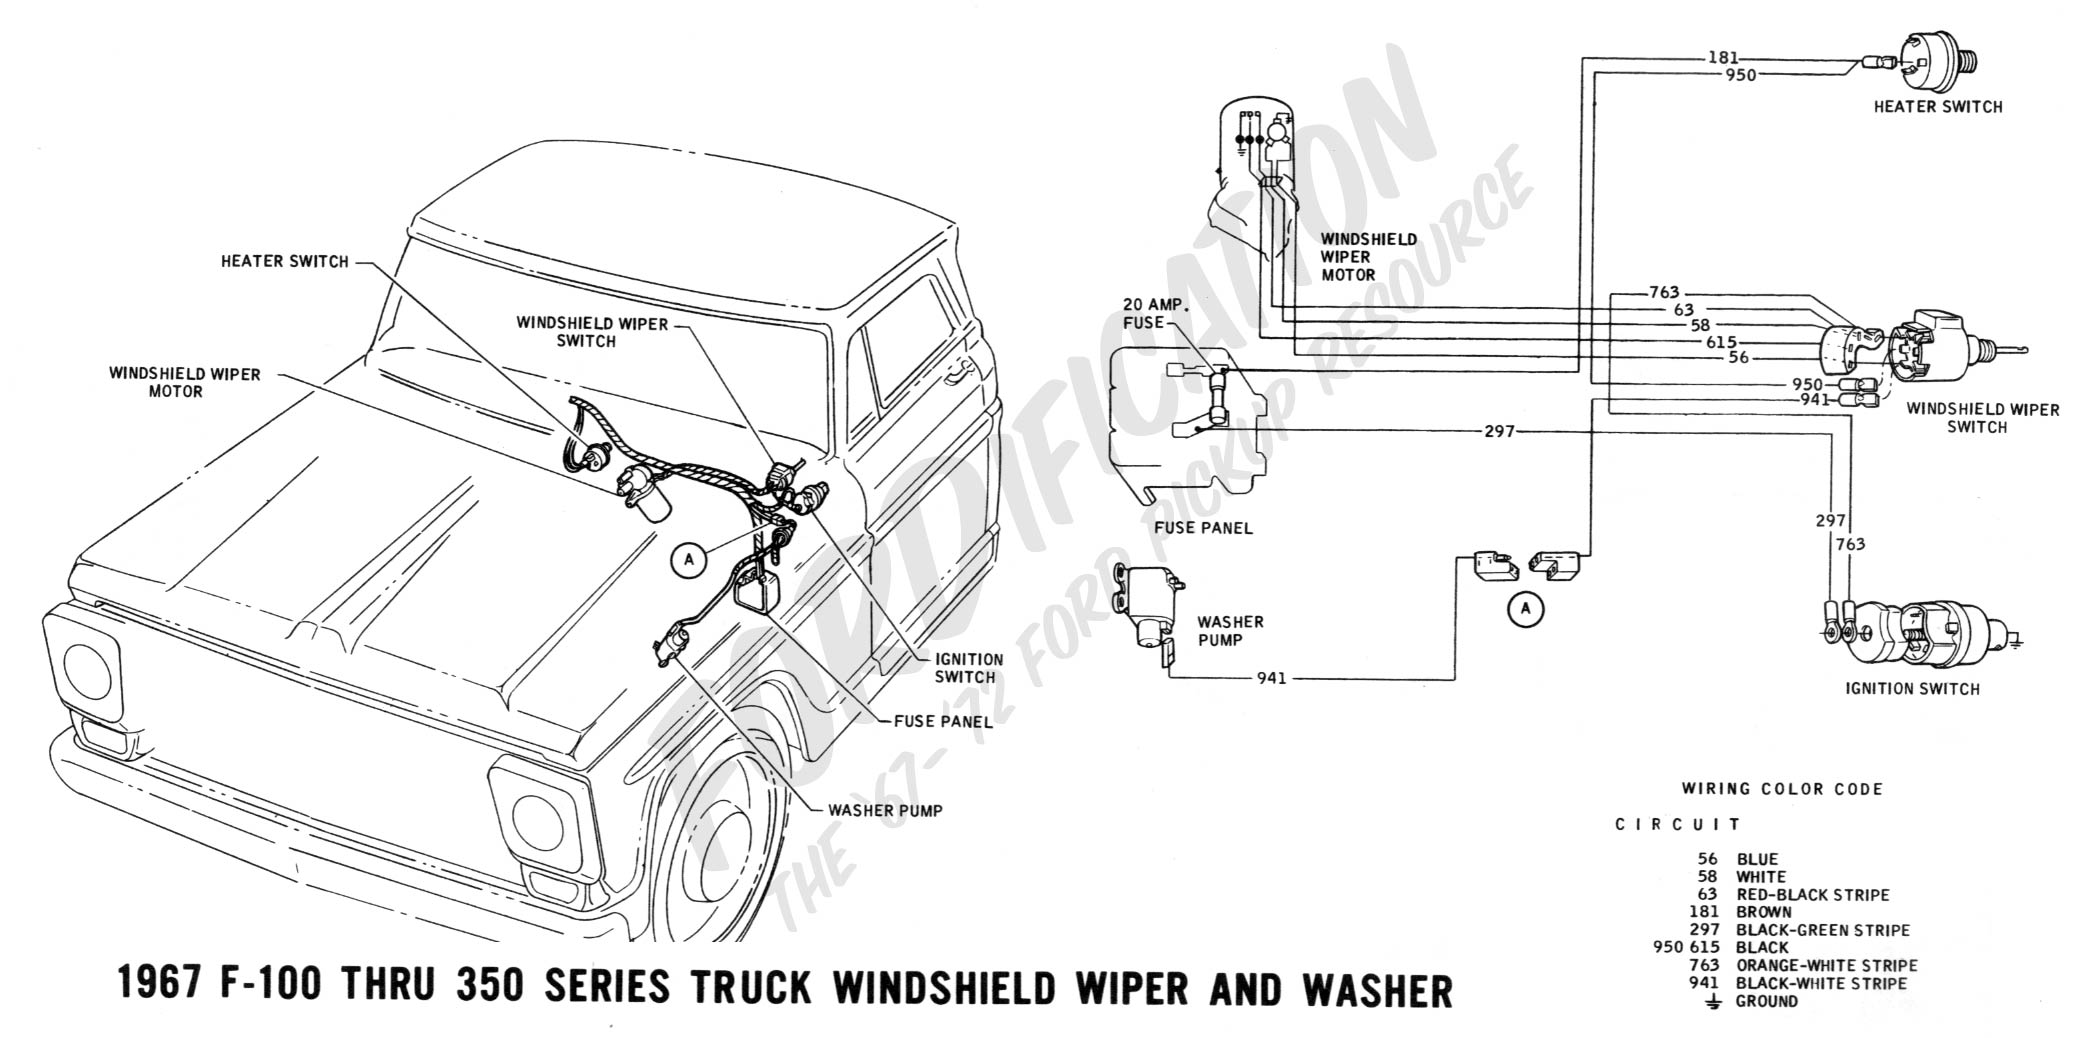 Ac Diagram 2 Wire Diagrams Easy Simple Detail Electric 1969 Chevelle Wiring Diagram likewise 1328236 Wiper Motor further 66 El Camino Wiring Diagram besides P 0900c15280083688 additionally 70 Chevelle Fuel Gauge Wiring Diagram. on 1965 el camino fuse box